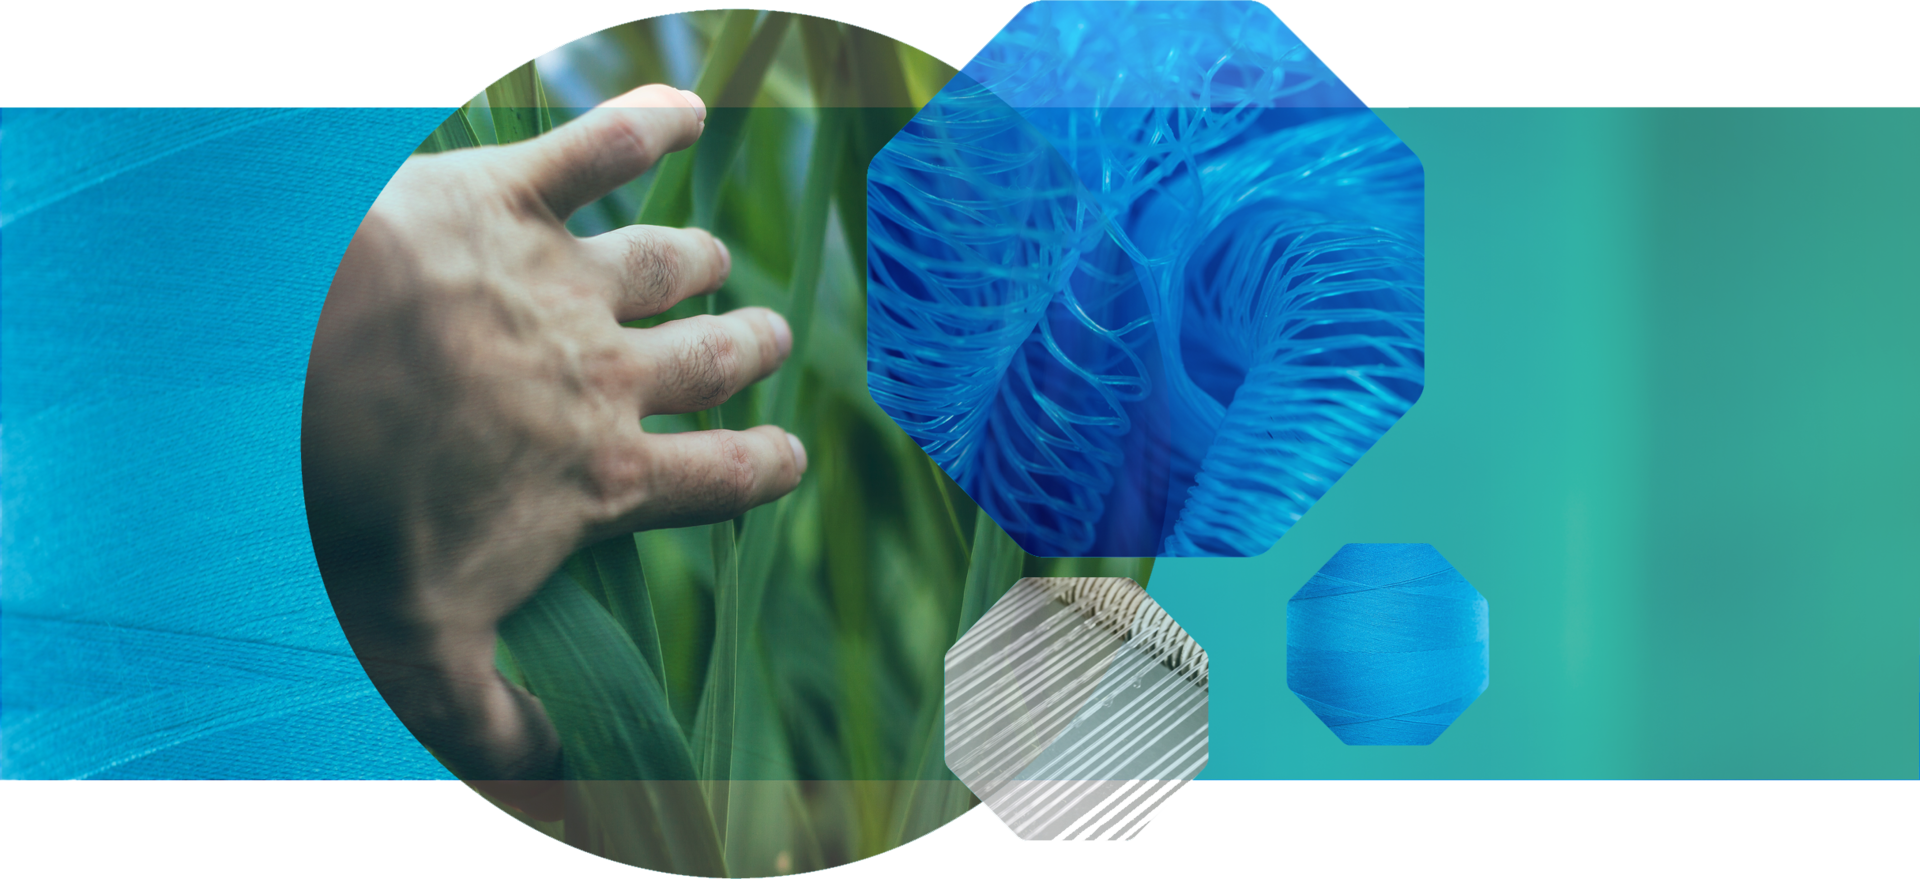 A NEW ERA OF FIBERS  AND PLASTICS:<br>Bringing bio-based solutions to everyday life